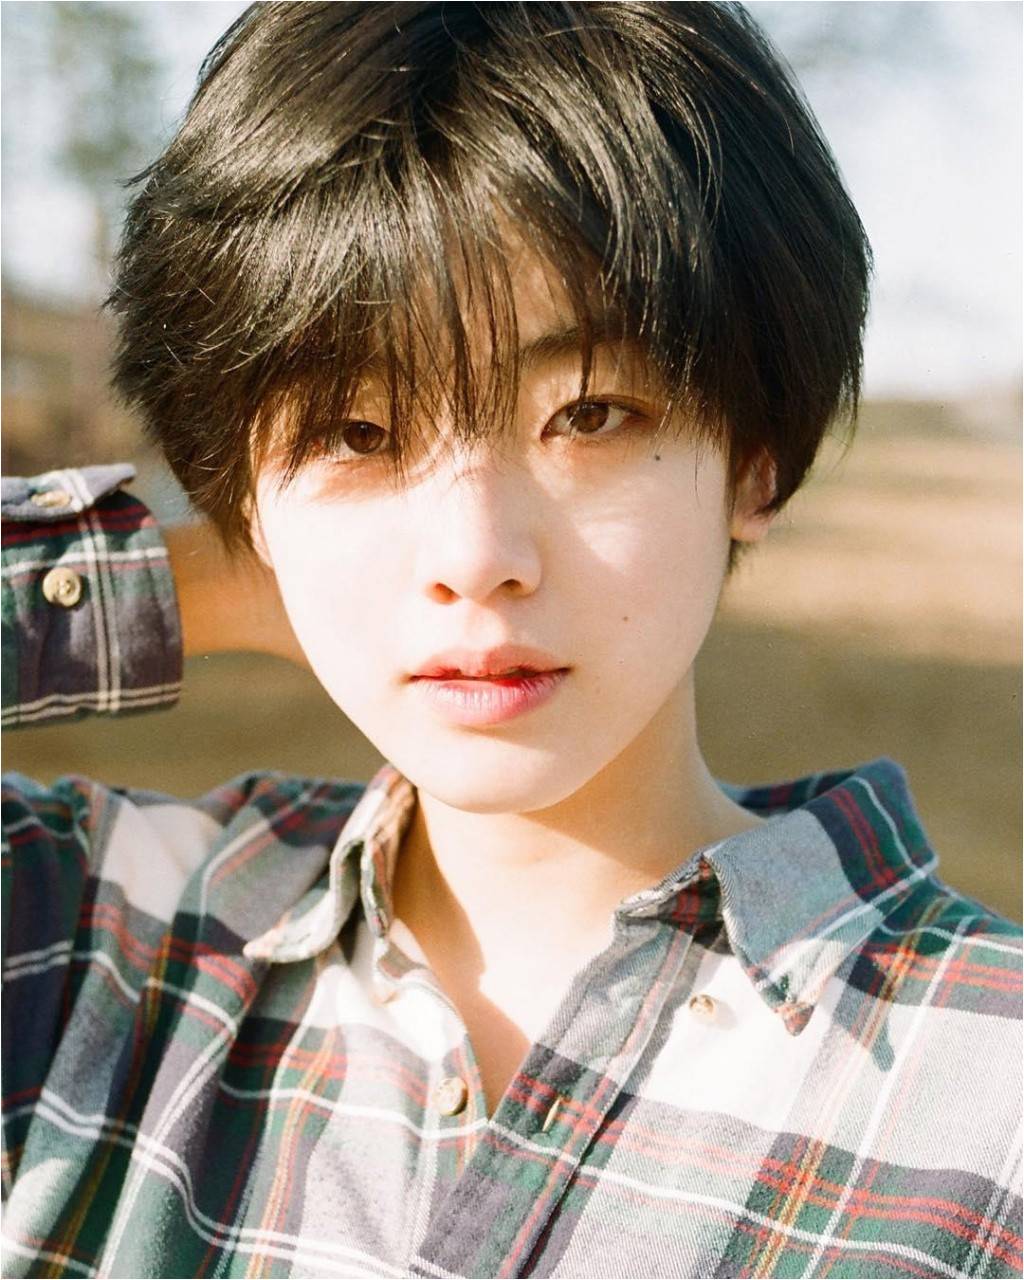 Cute Korean Girl Hairstyles Unique 70 asian Girl Hairstyles Lovely tomboy Haircut 0d tomboy Haircuts